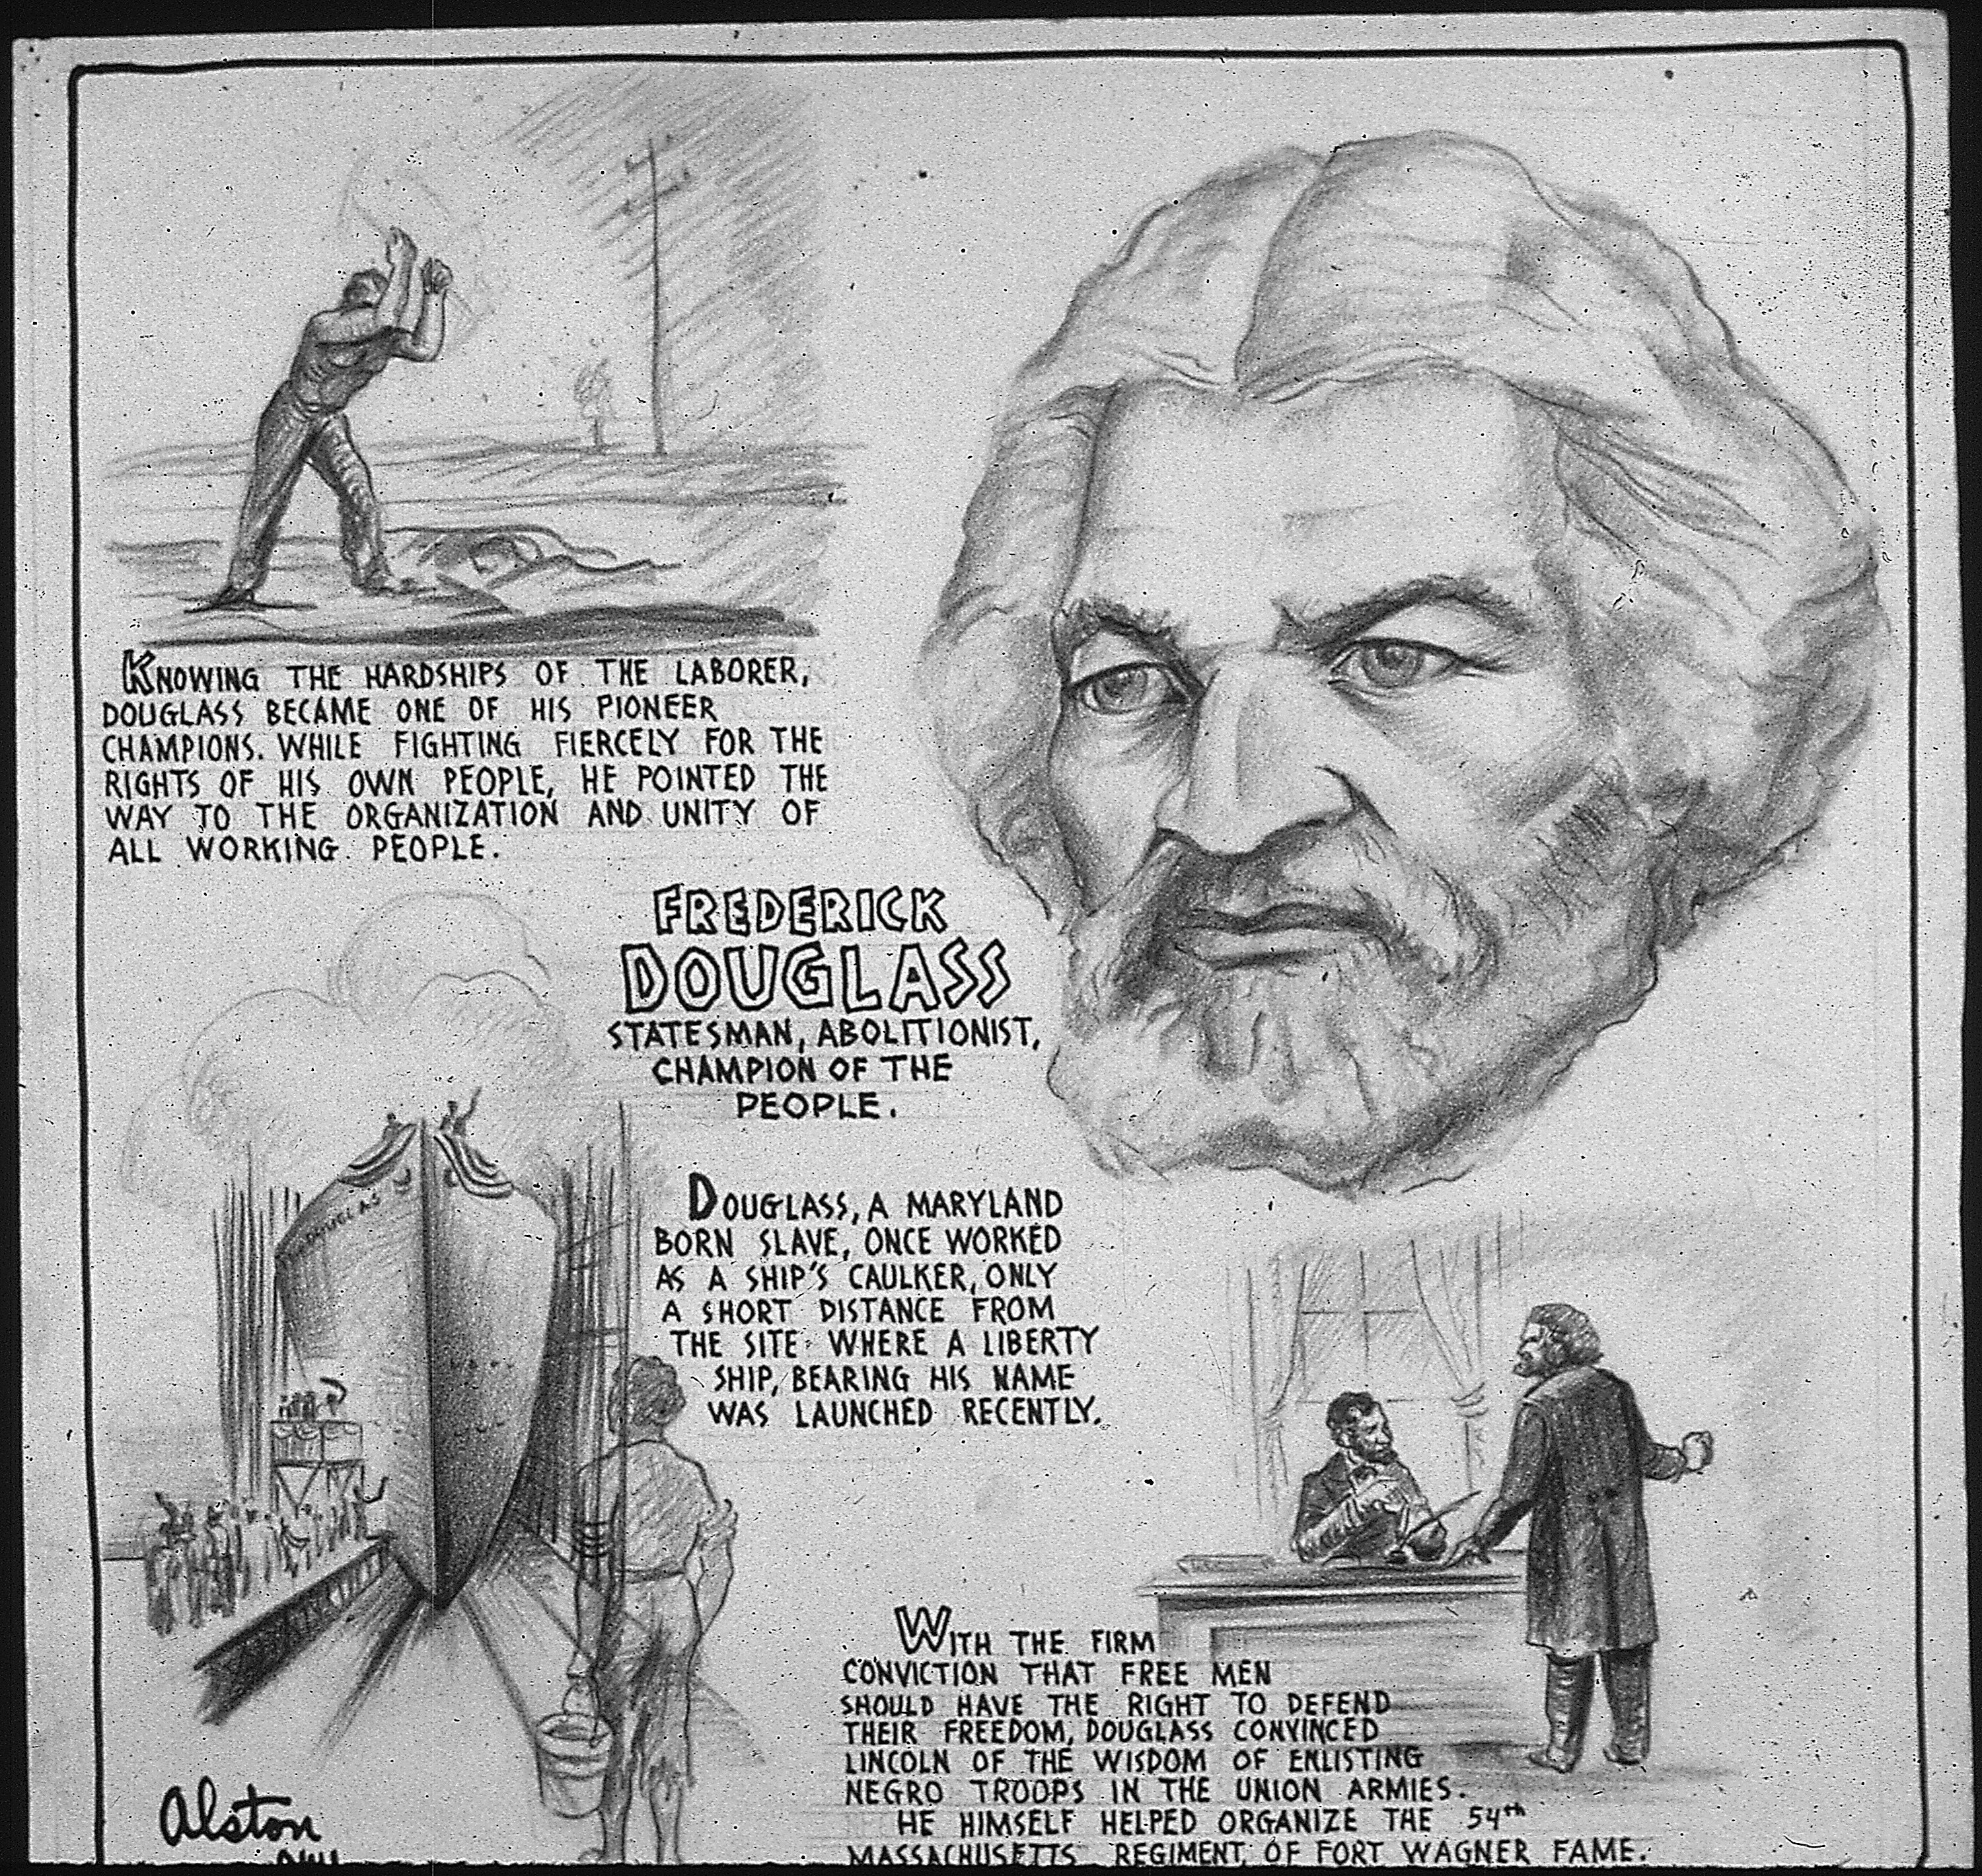 essays on frederick douglass and slavery Slavery in the eyes of frederick douglass essay  pay to have school papers done for you exploring writing paragraphs and essays frederick douglass at custom.